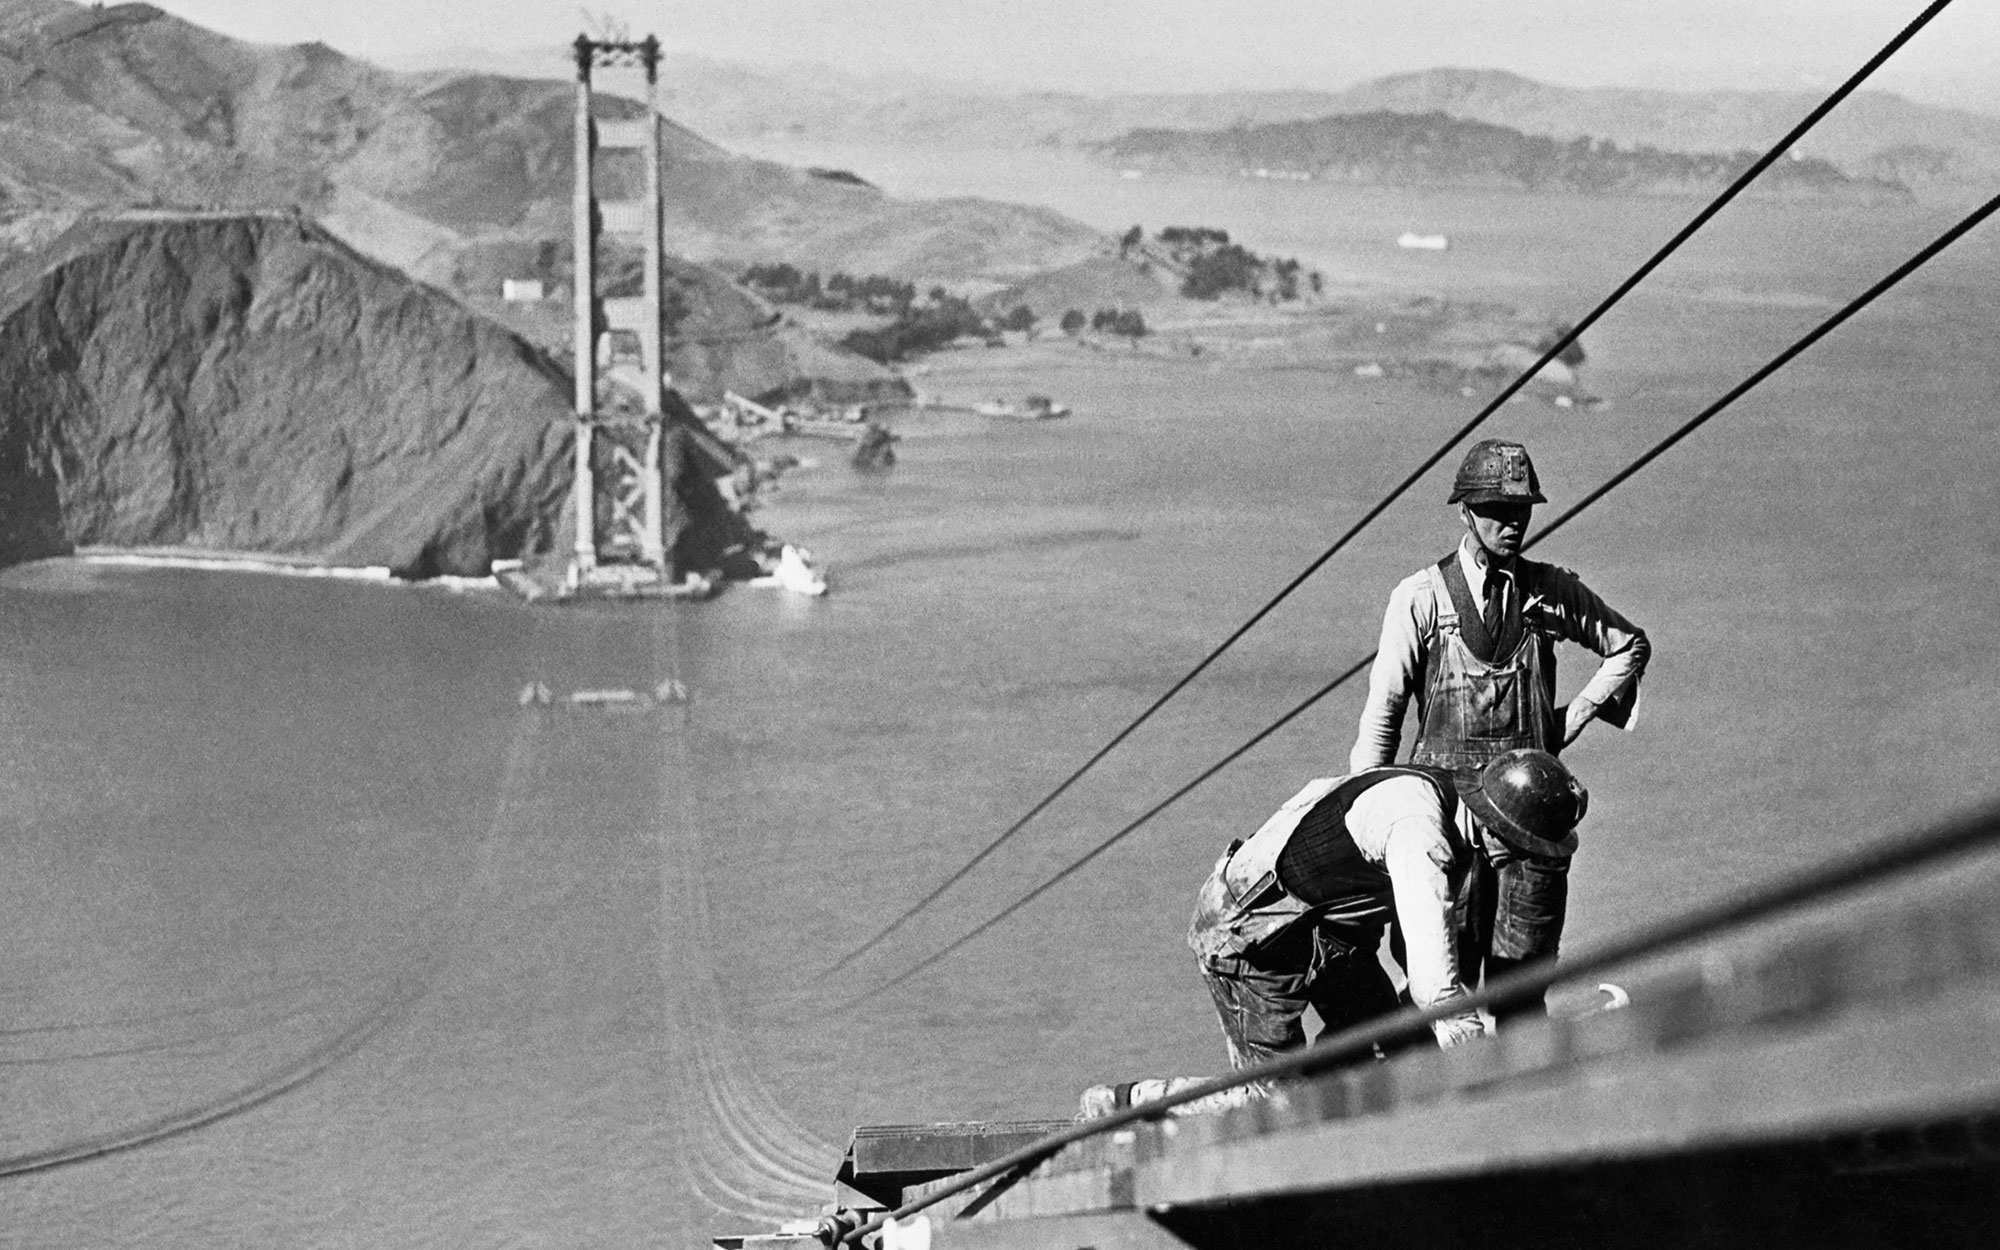 83 Years Ago Today, Construction on the Golden Gate Bridge Began